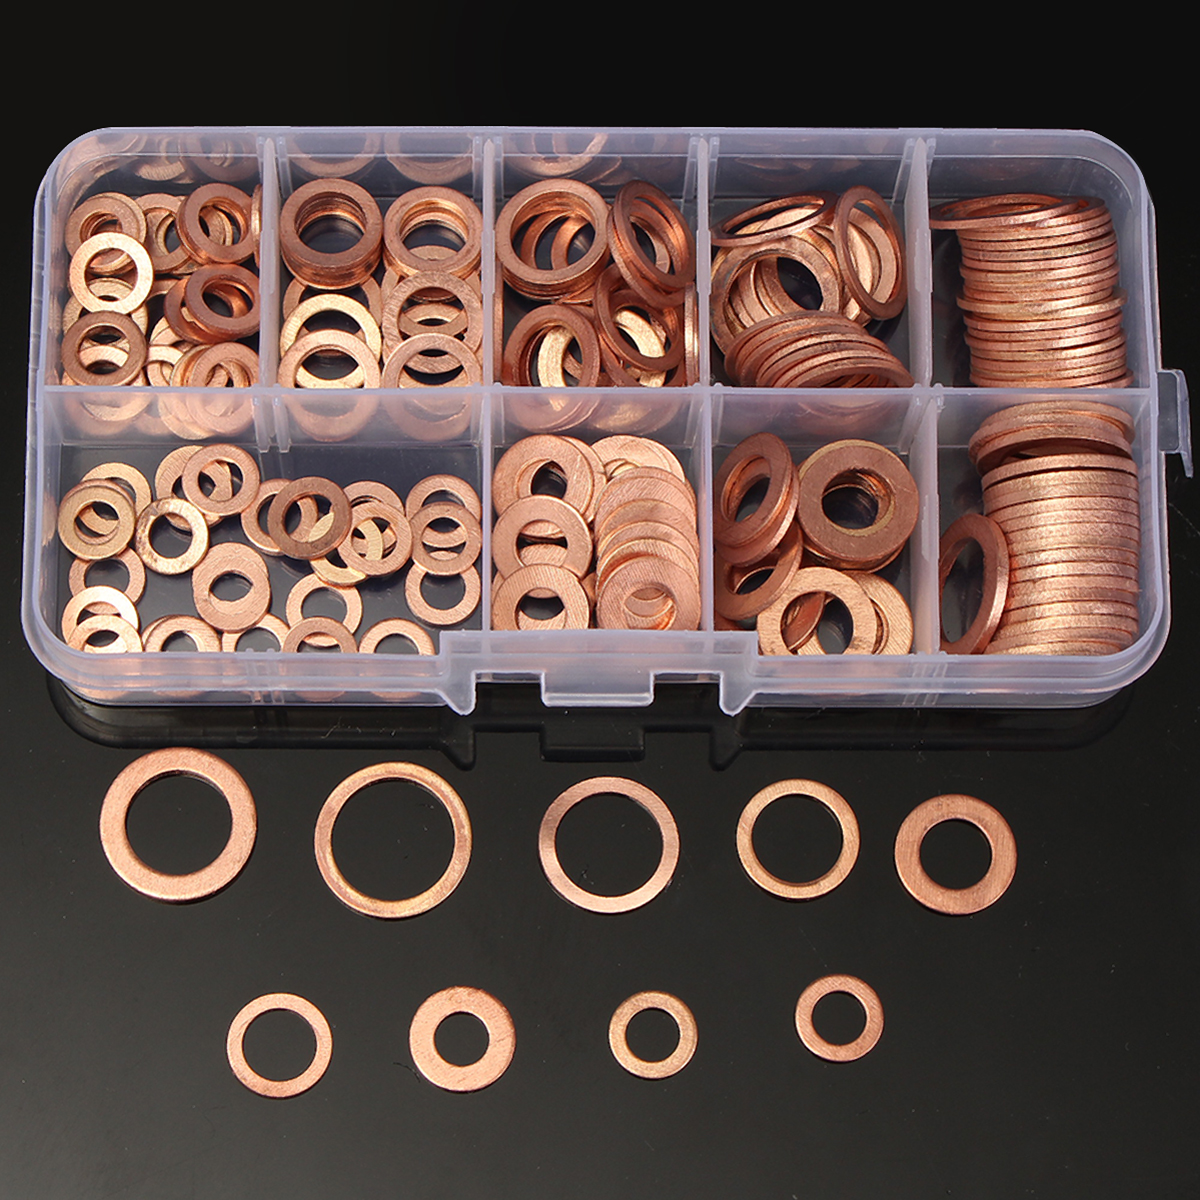 200PCS Assorted 9 Size Solid Copper Washer Sump Plug Flat Sealing Washer Kit with Storage Case